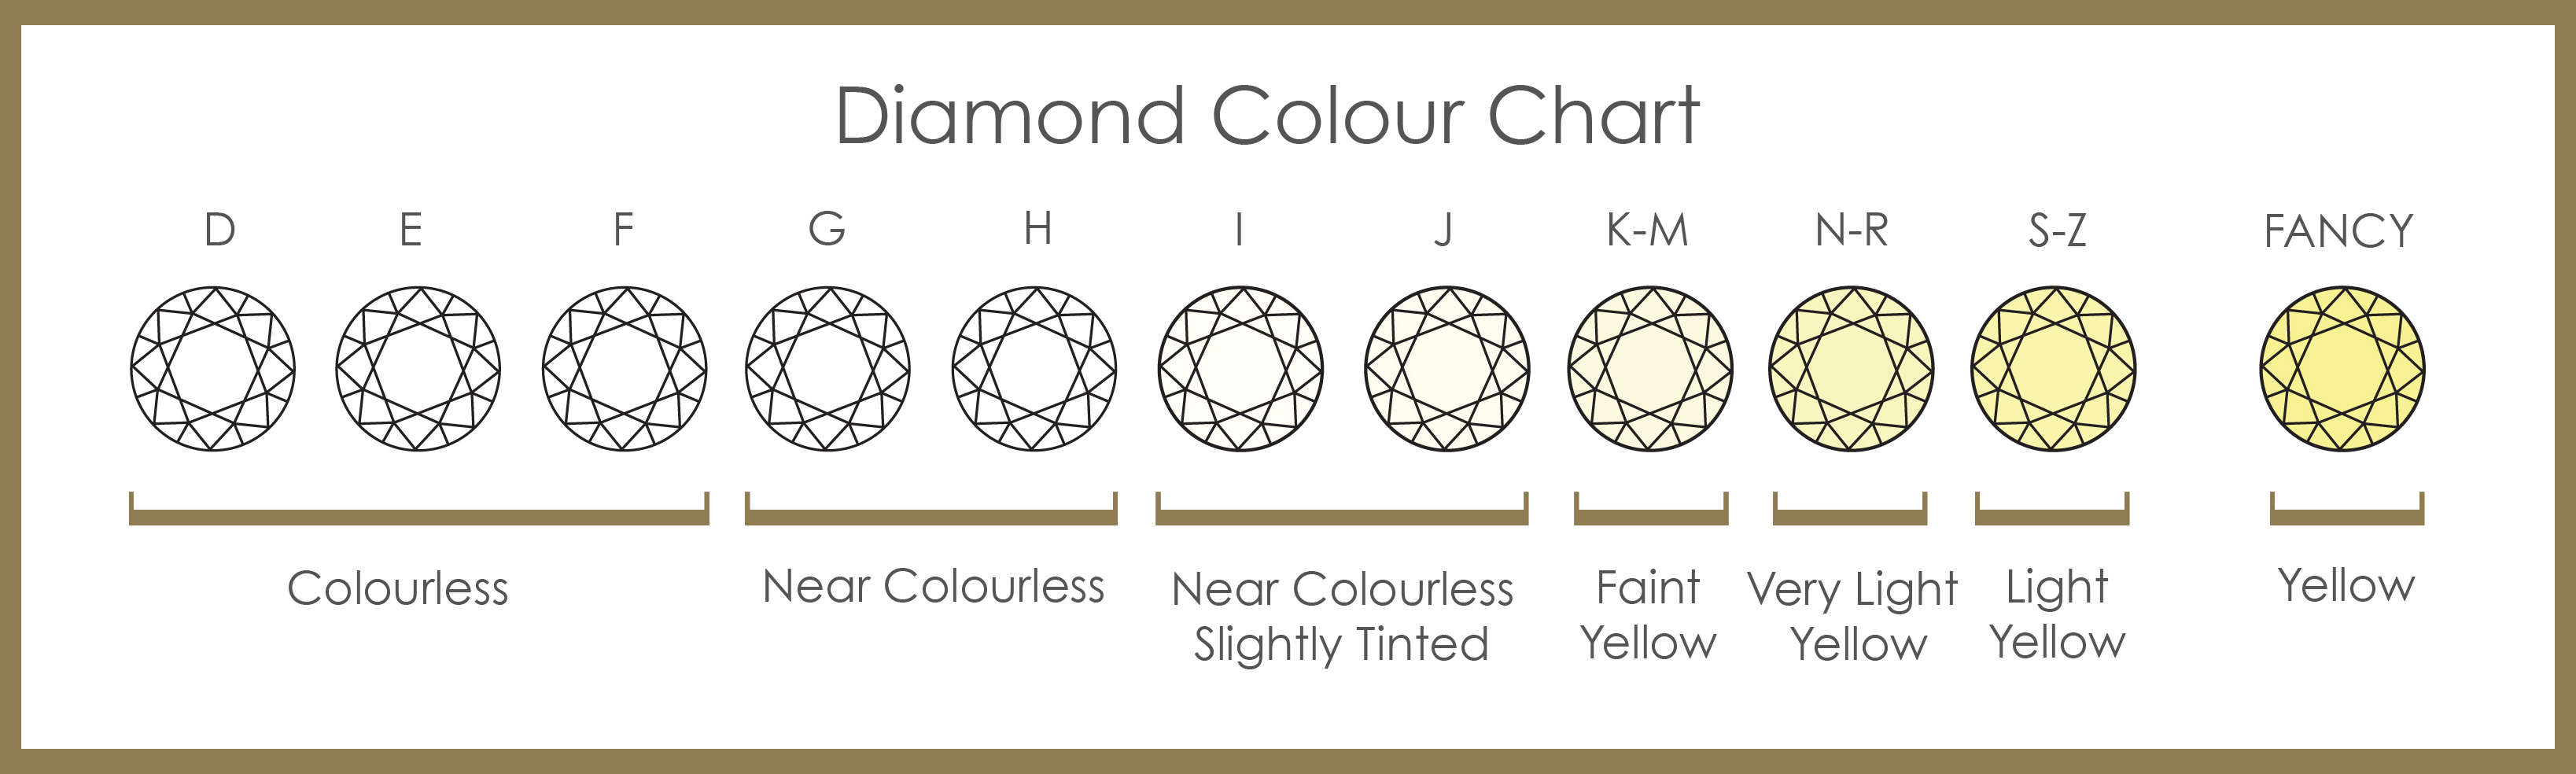 DIAMOND EDUCATION Alexander Watchmaker Jeweller – Diamond Chart